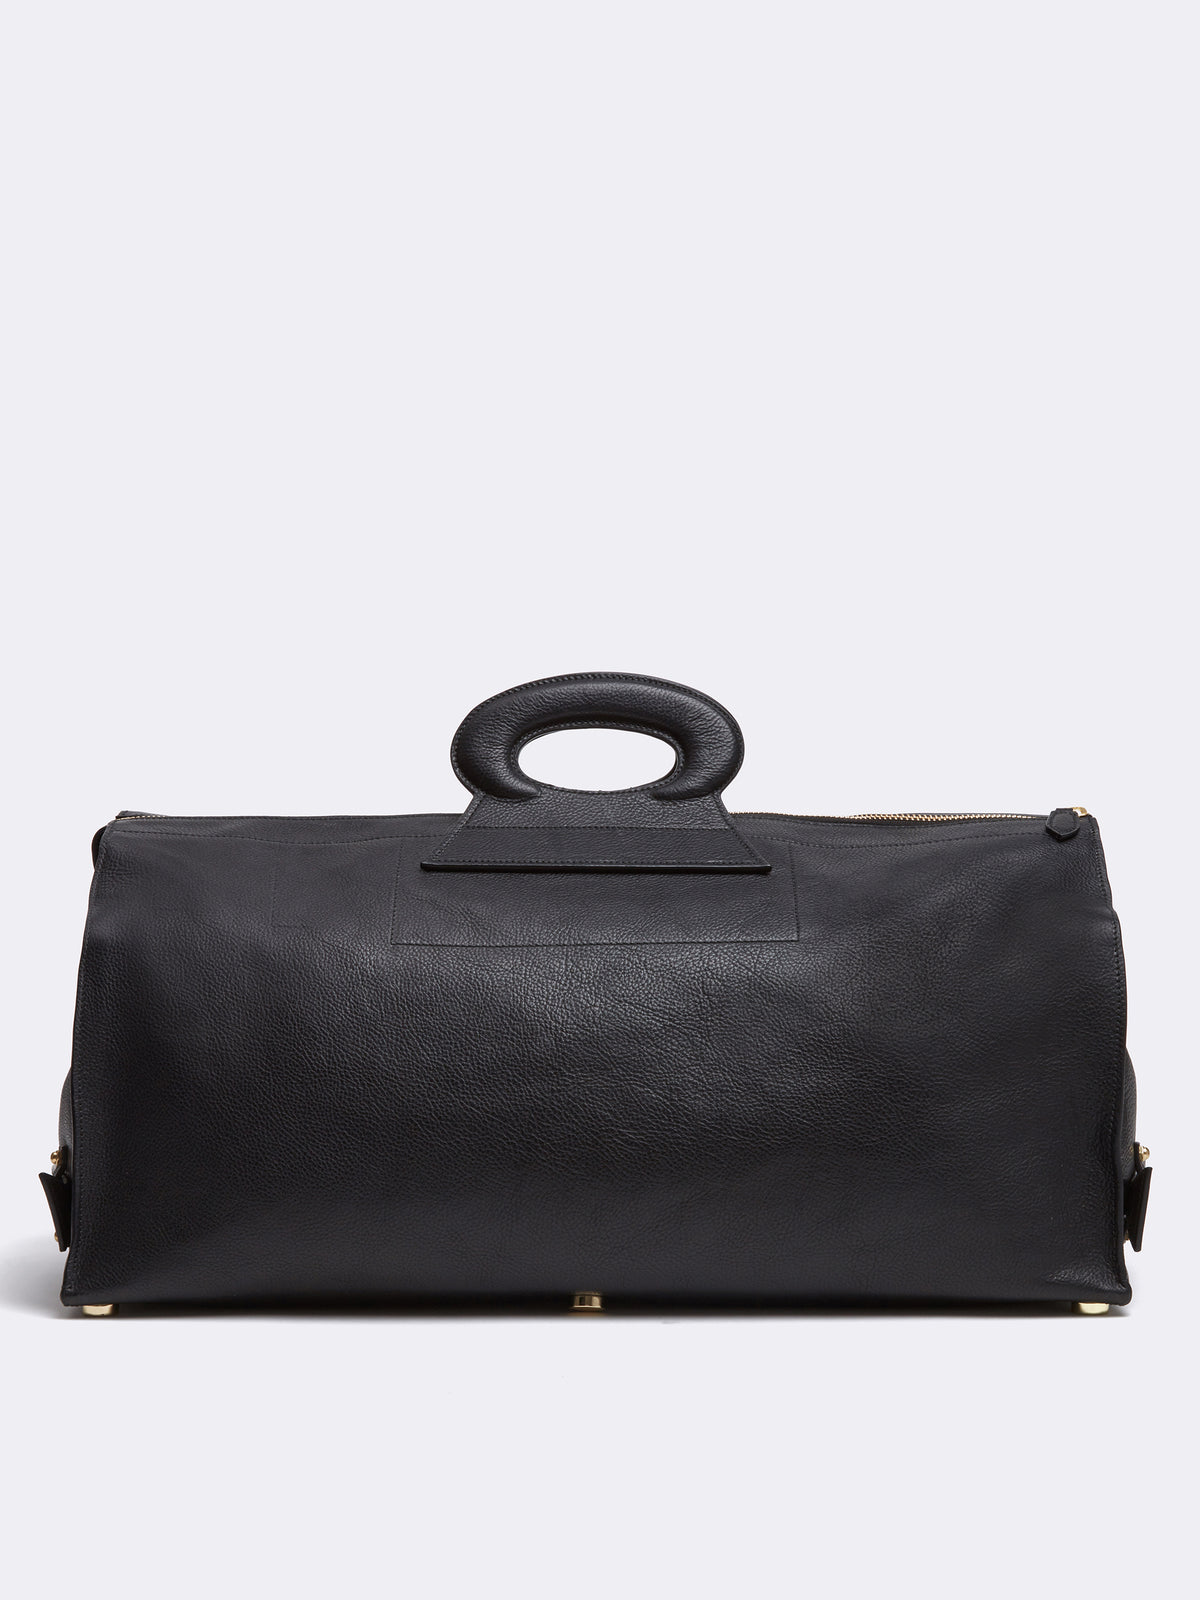 Mark Cross Vintage Leather Duffle Bag Calfskin Black Back